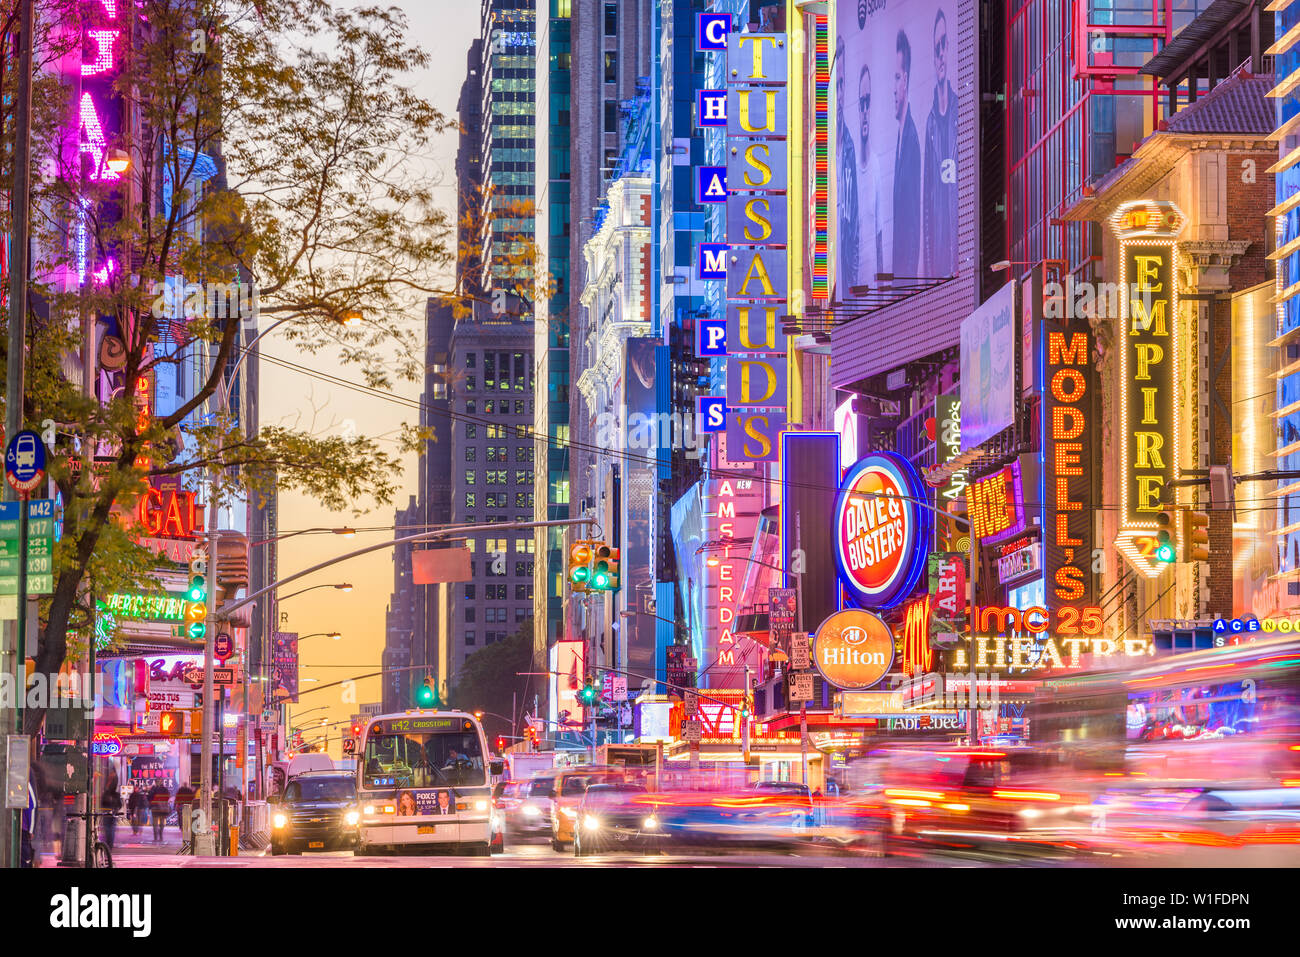 NEW YORK CITY - NOVEMBER 14, 2016: Traffic moves below the illuminated signs of 42nd Street. The landmark street is home to numerous theaters, stores, - Stock Image